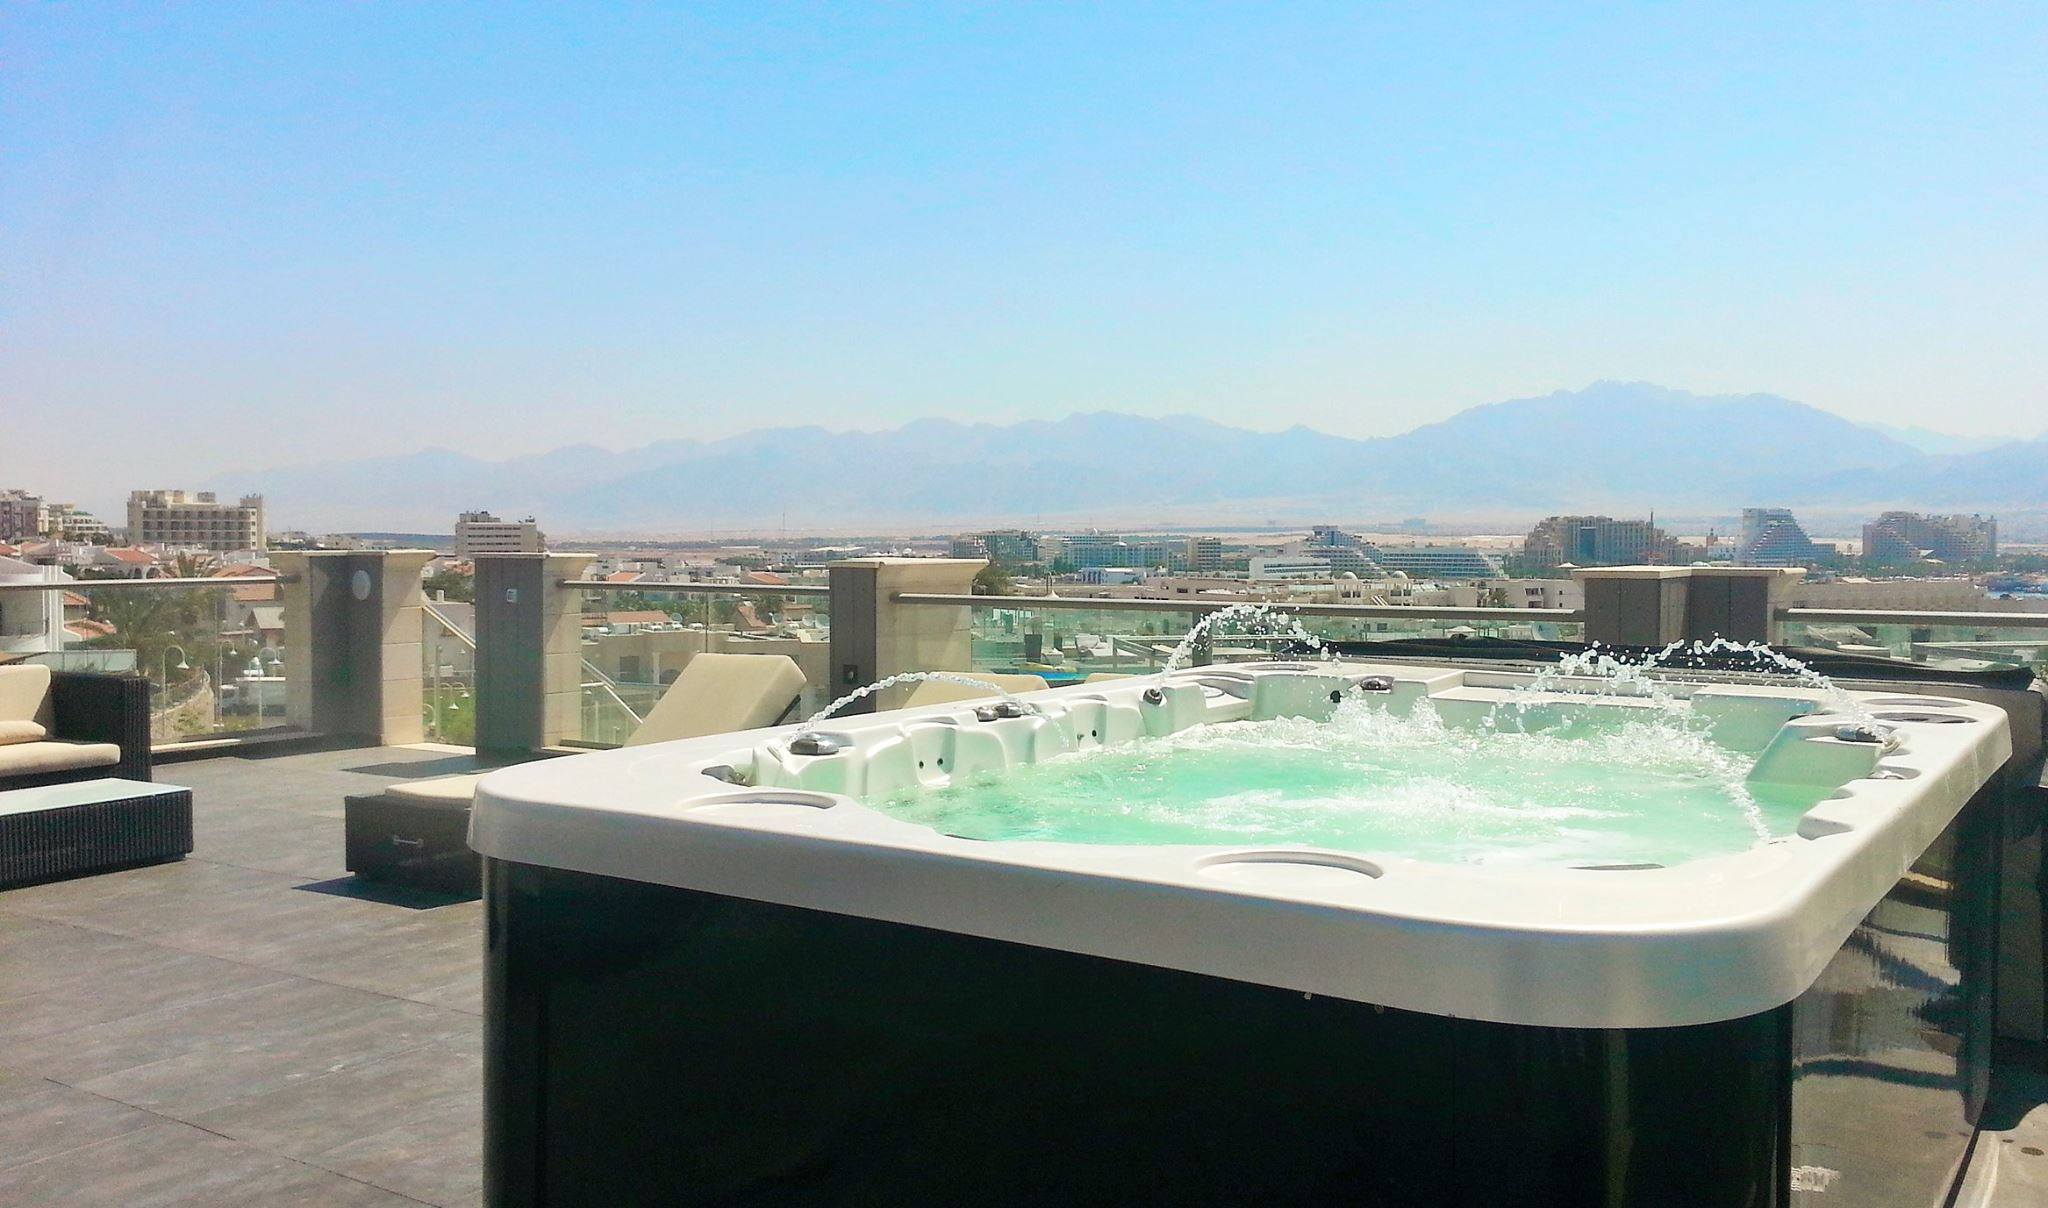 Israel Luxury Villa Rentals In Eilat With A Pool Jacuzzi Roof Terrace